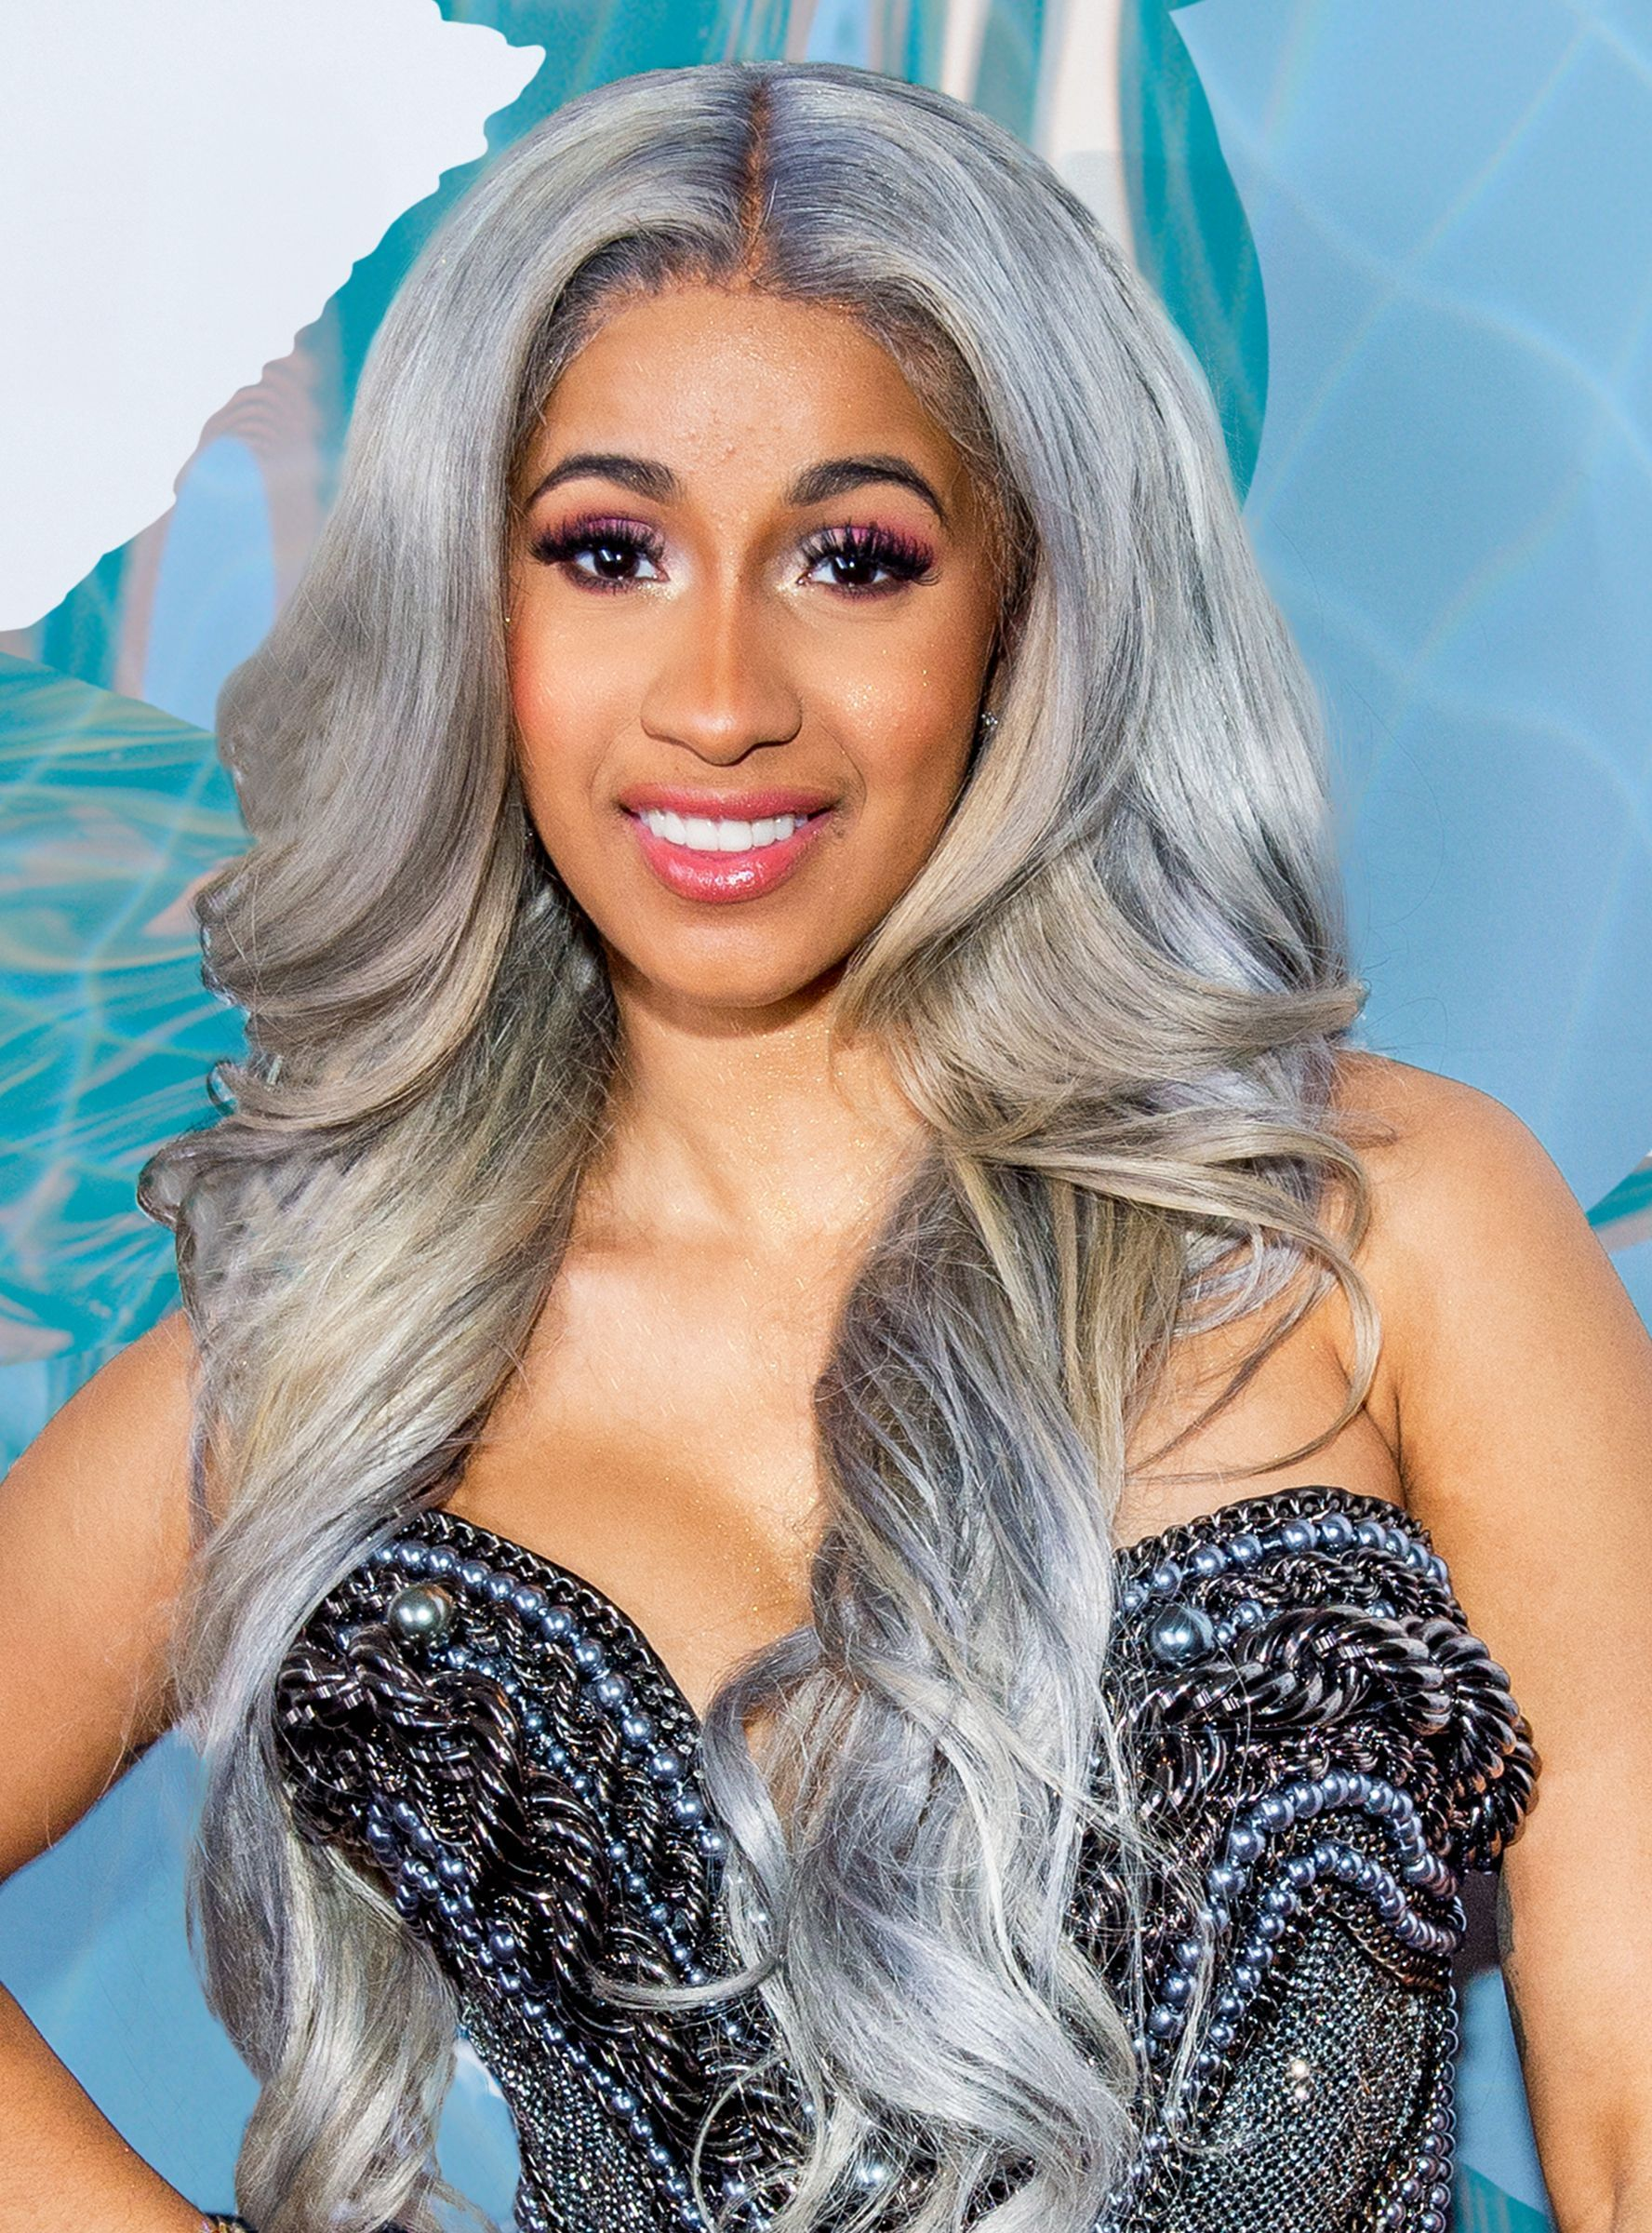 Model Sues Rapper Cardi B Over Naughty Album Cover: Why Cardi B Is Not Happy With Her Hairstylist Right Now In